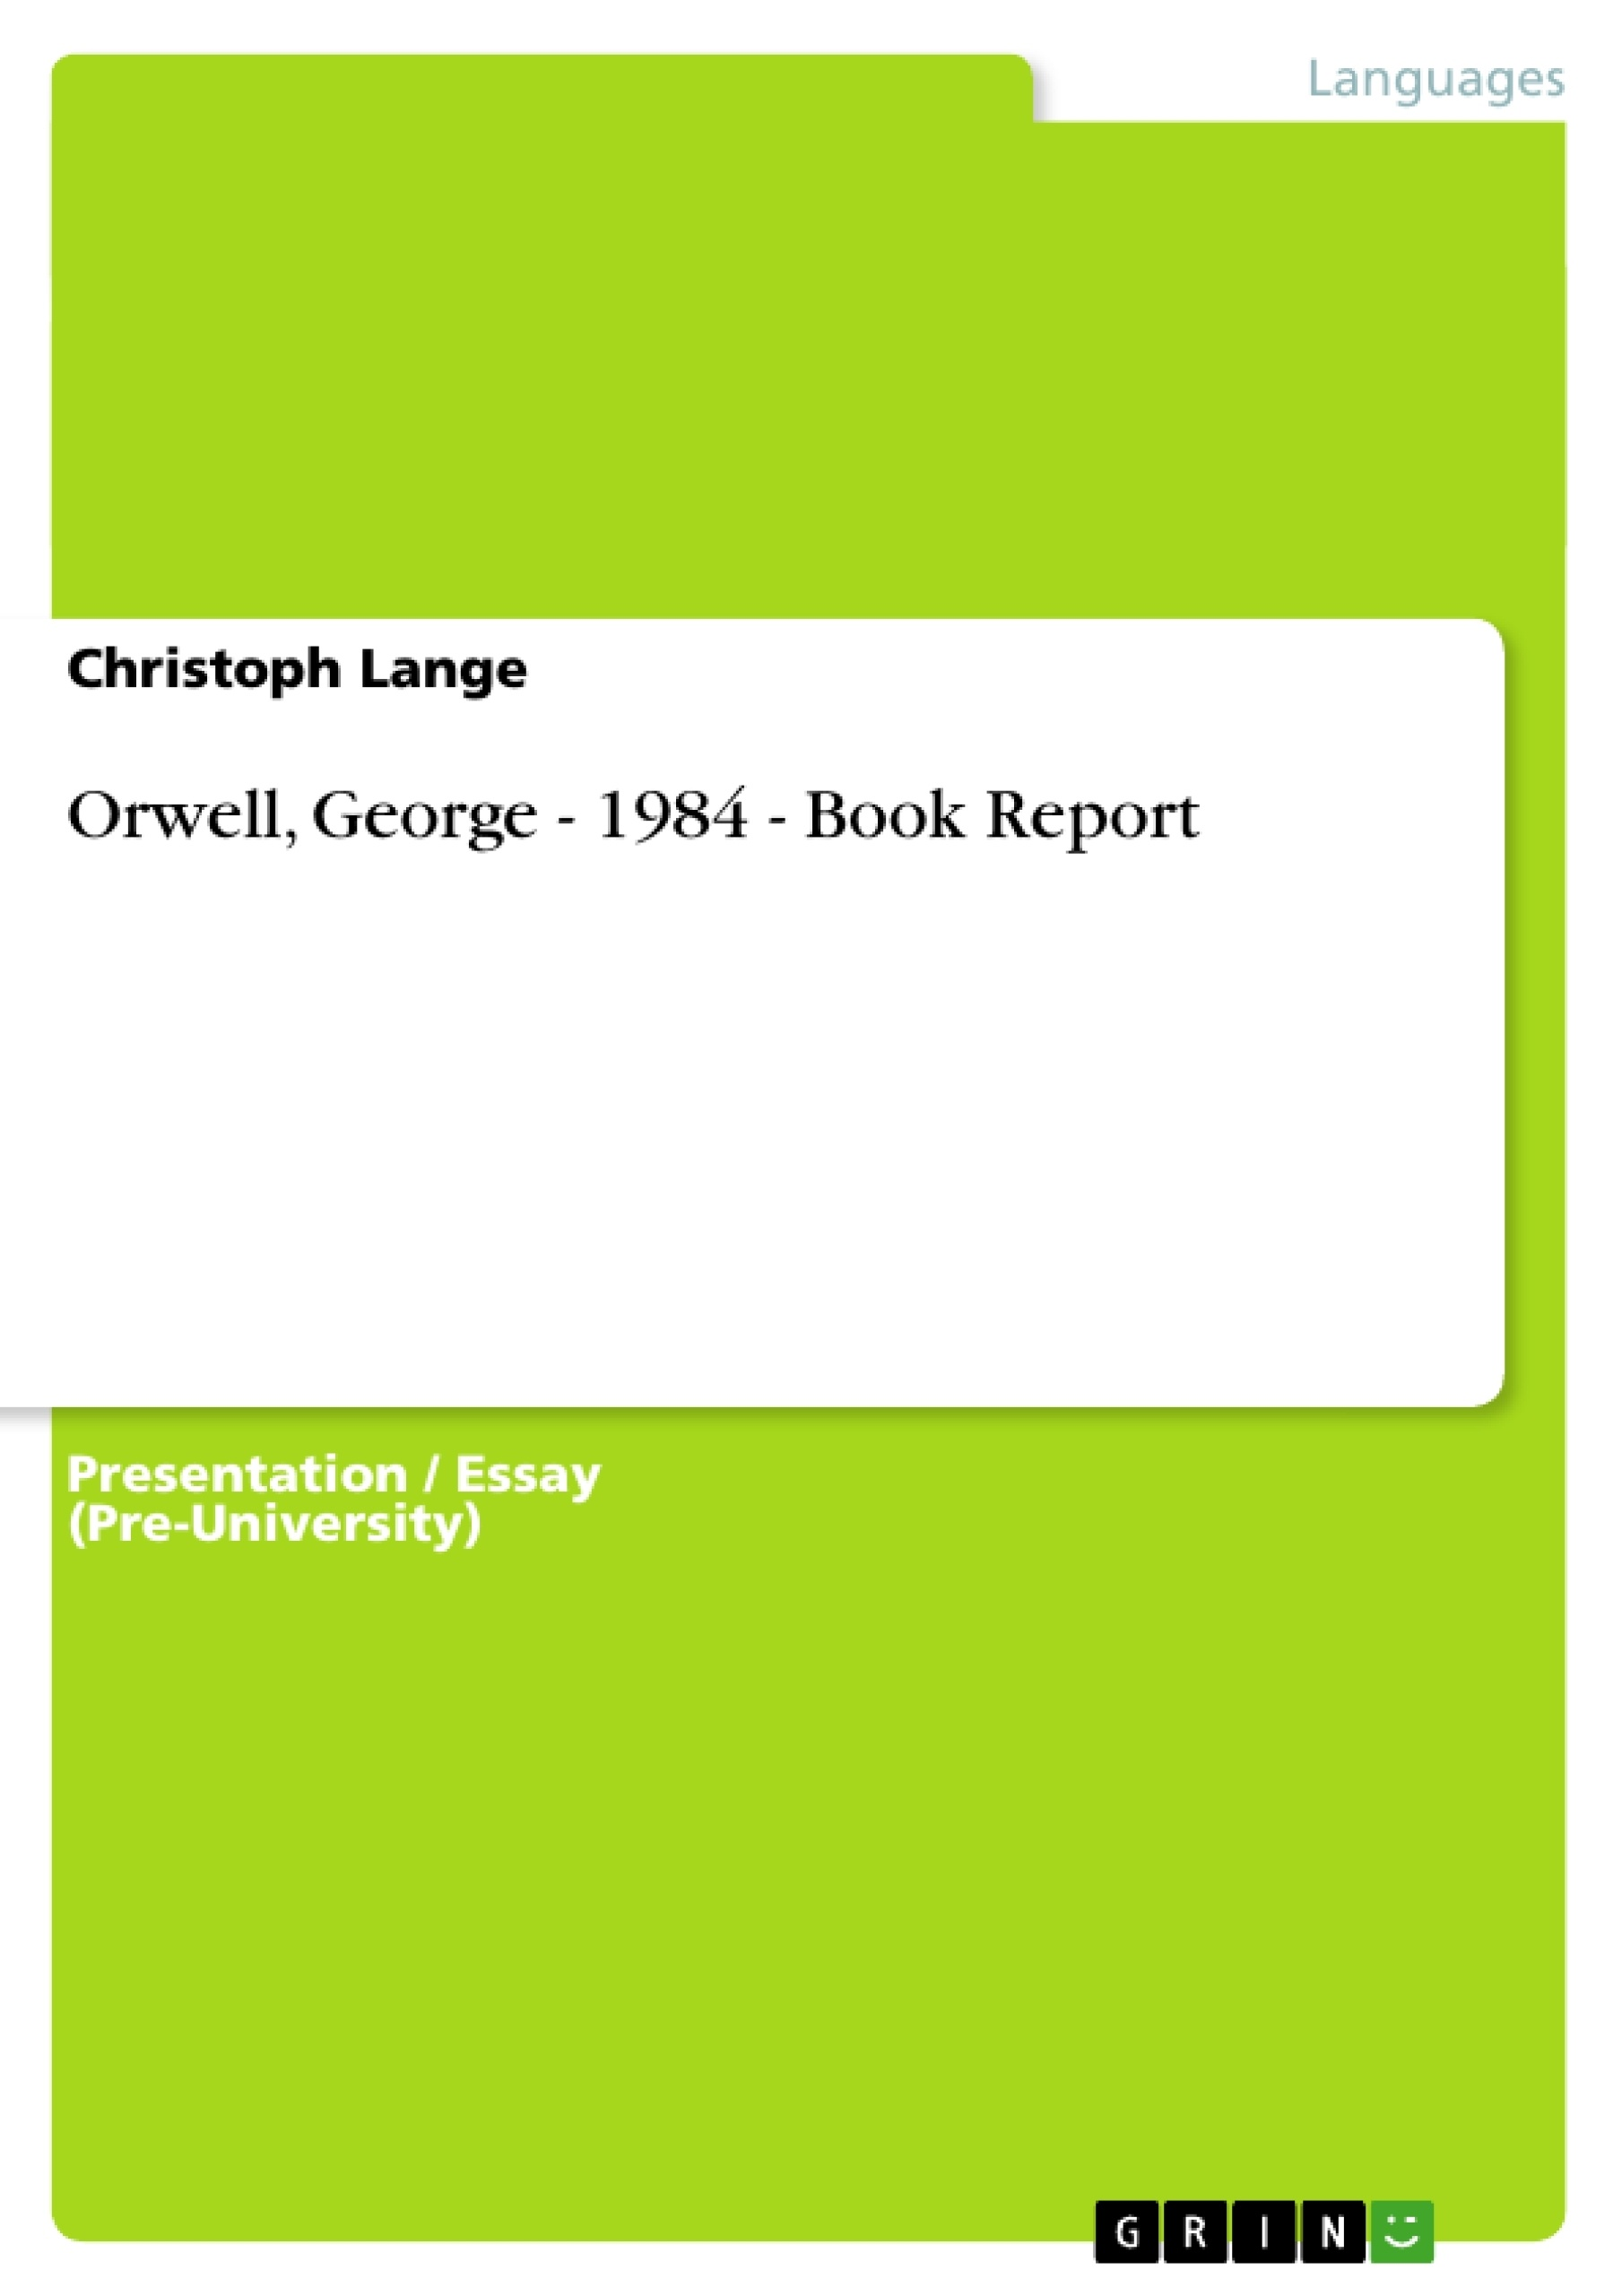 Title: Orwell, George - 1984 - Book Report